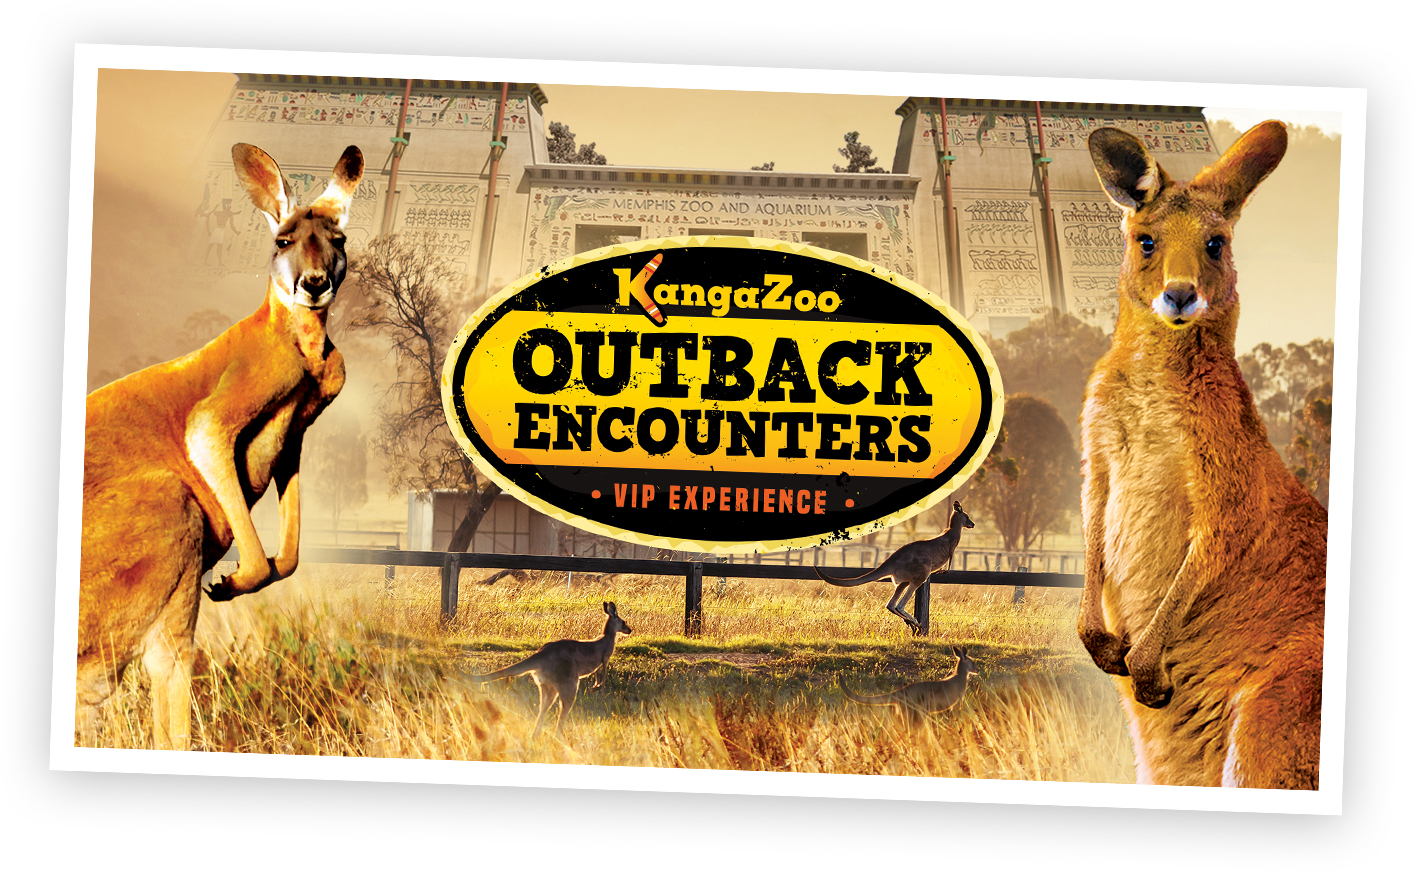 Outback Encounters